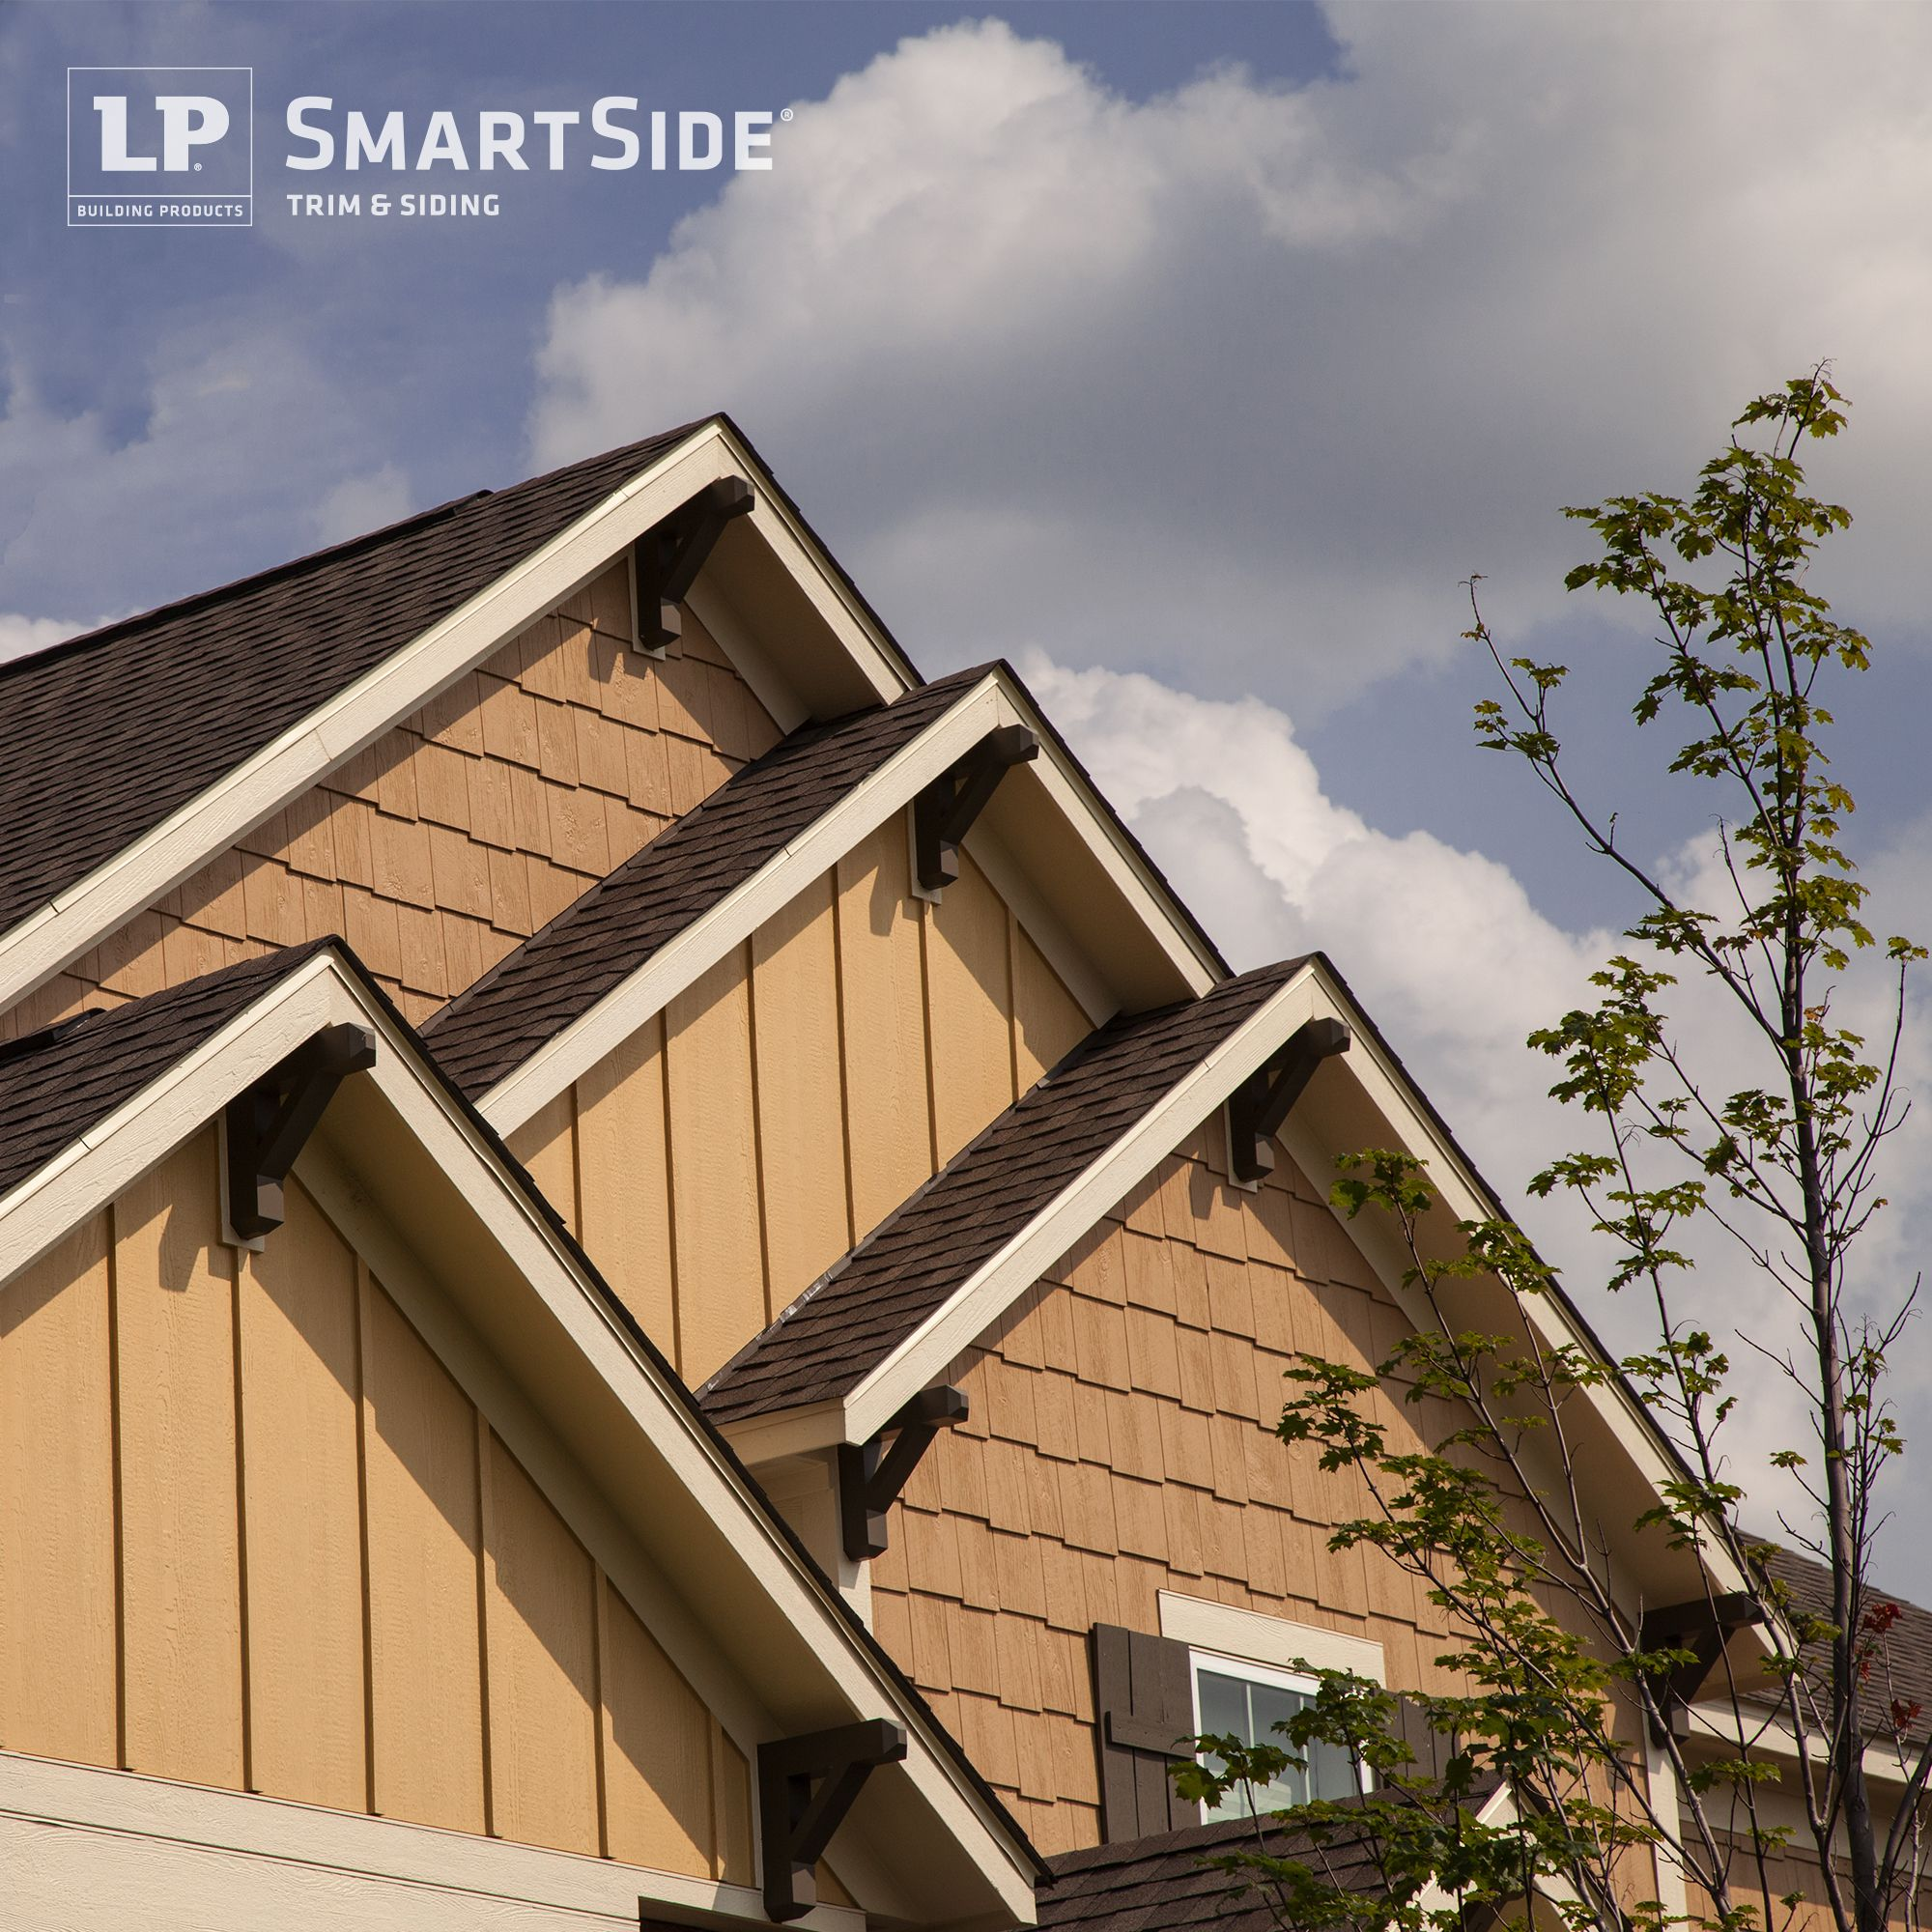 A Staggering Of LP SmartSide Cedar Shakes And Panel Siding